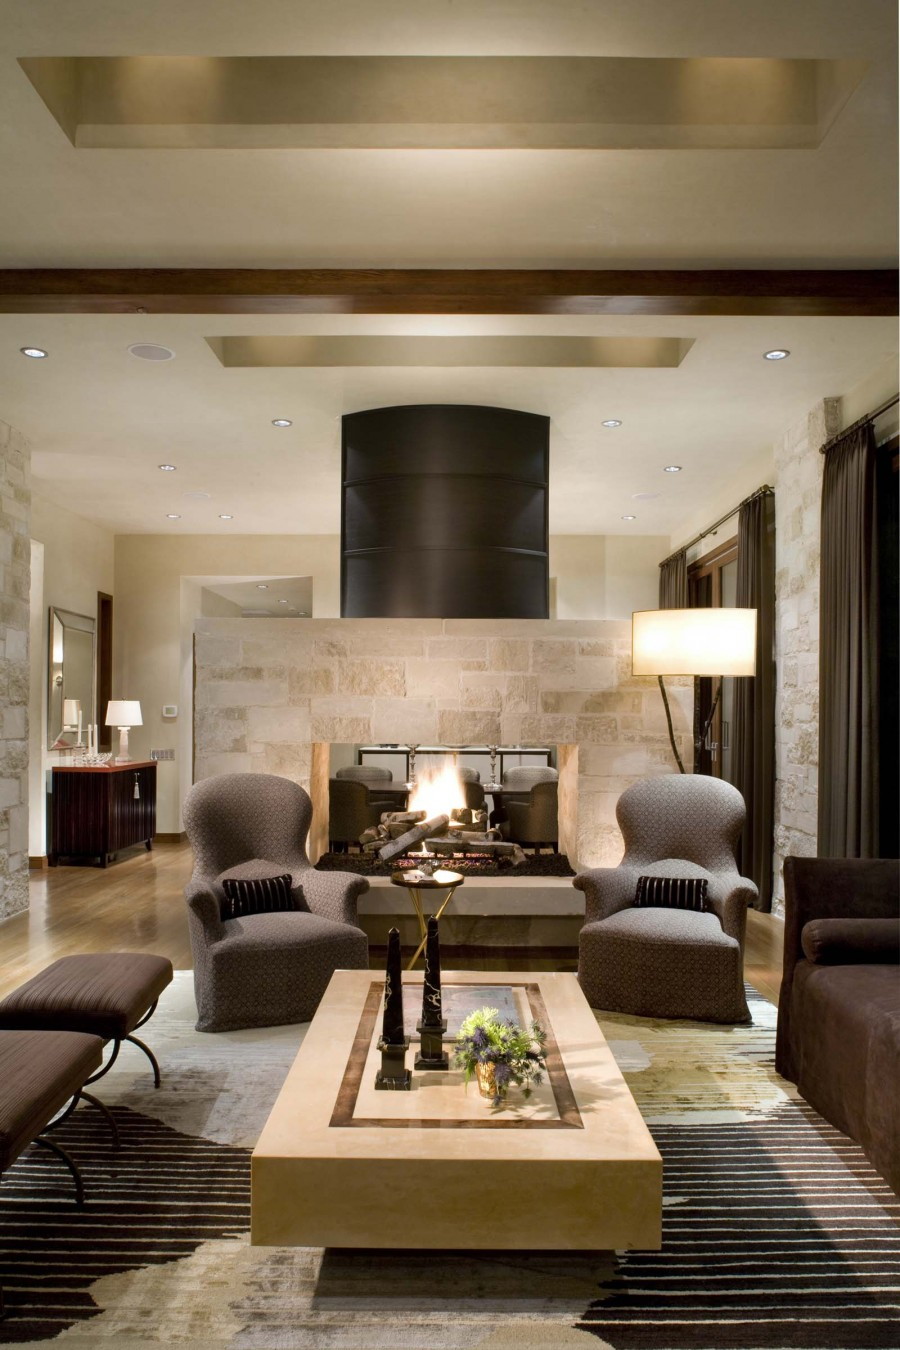 16 fabulous earth tones living room designs decoholic - Living room contemporary decorating ideas ...